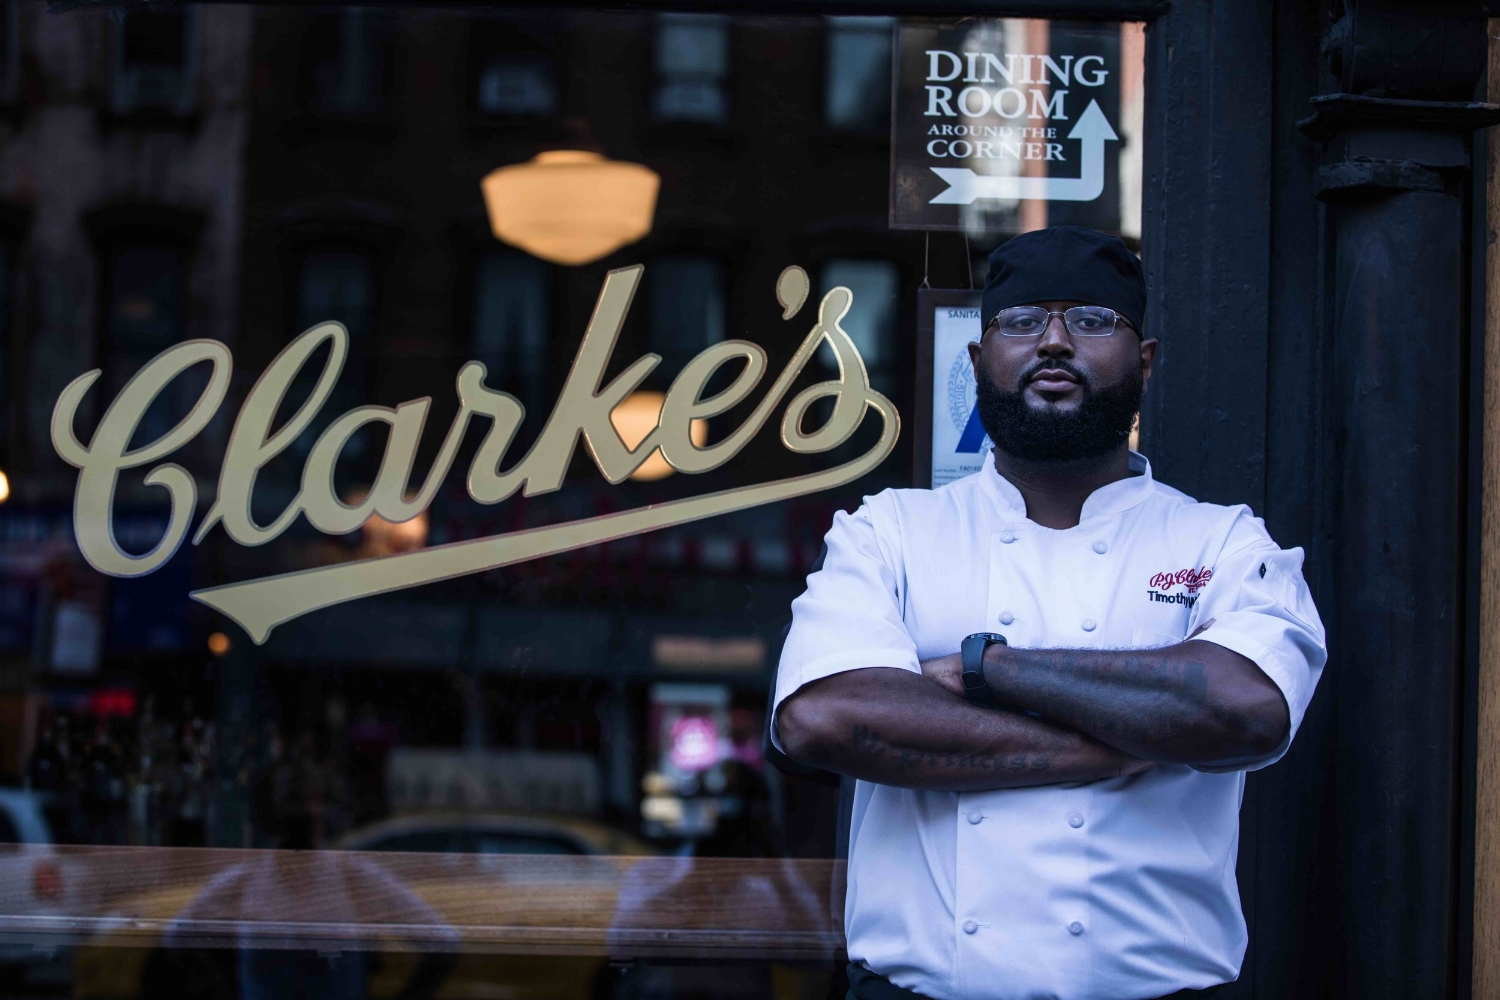 Chef-Timothy-Walker_pj-clarkes.jpg